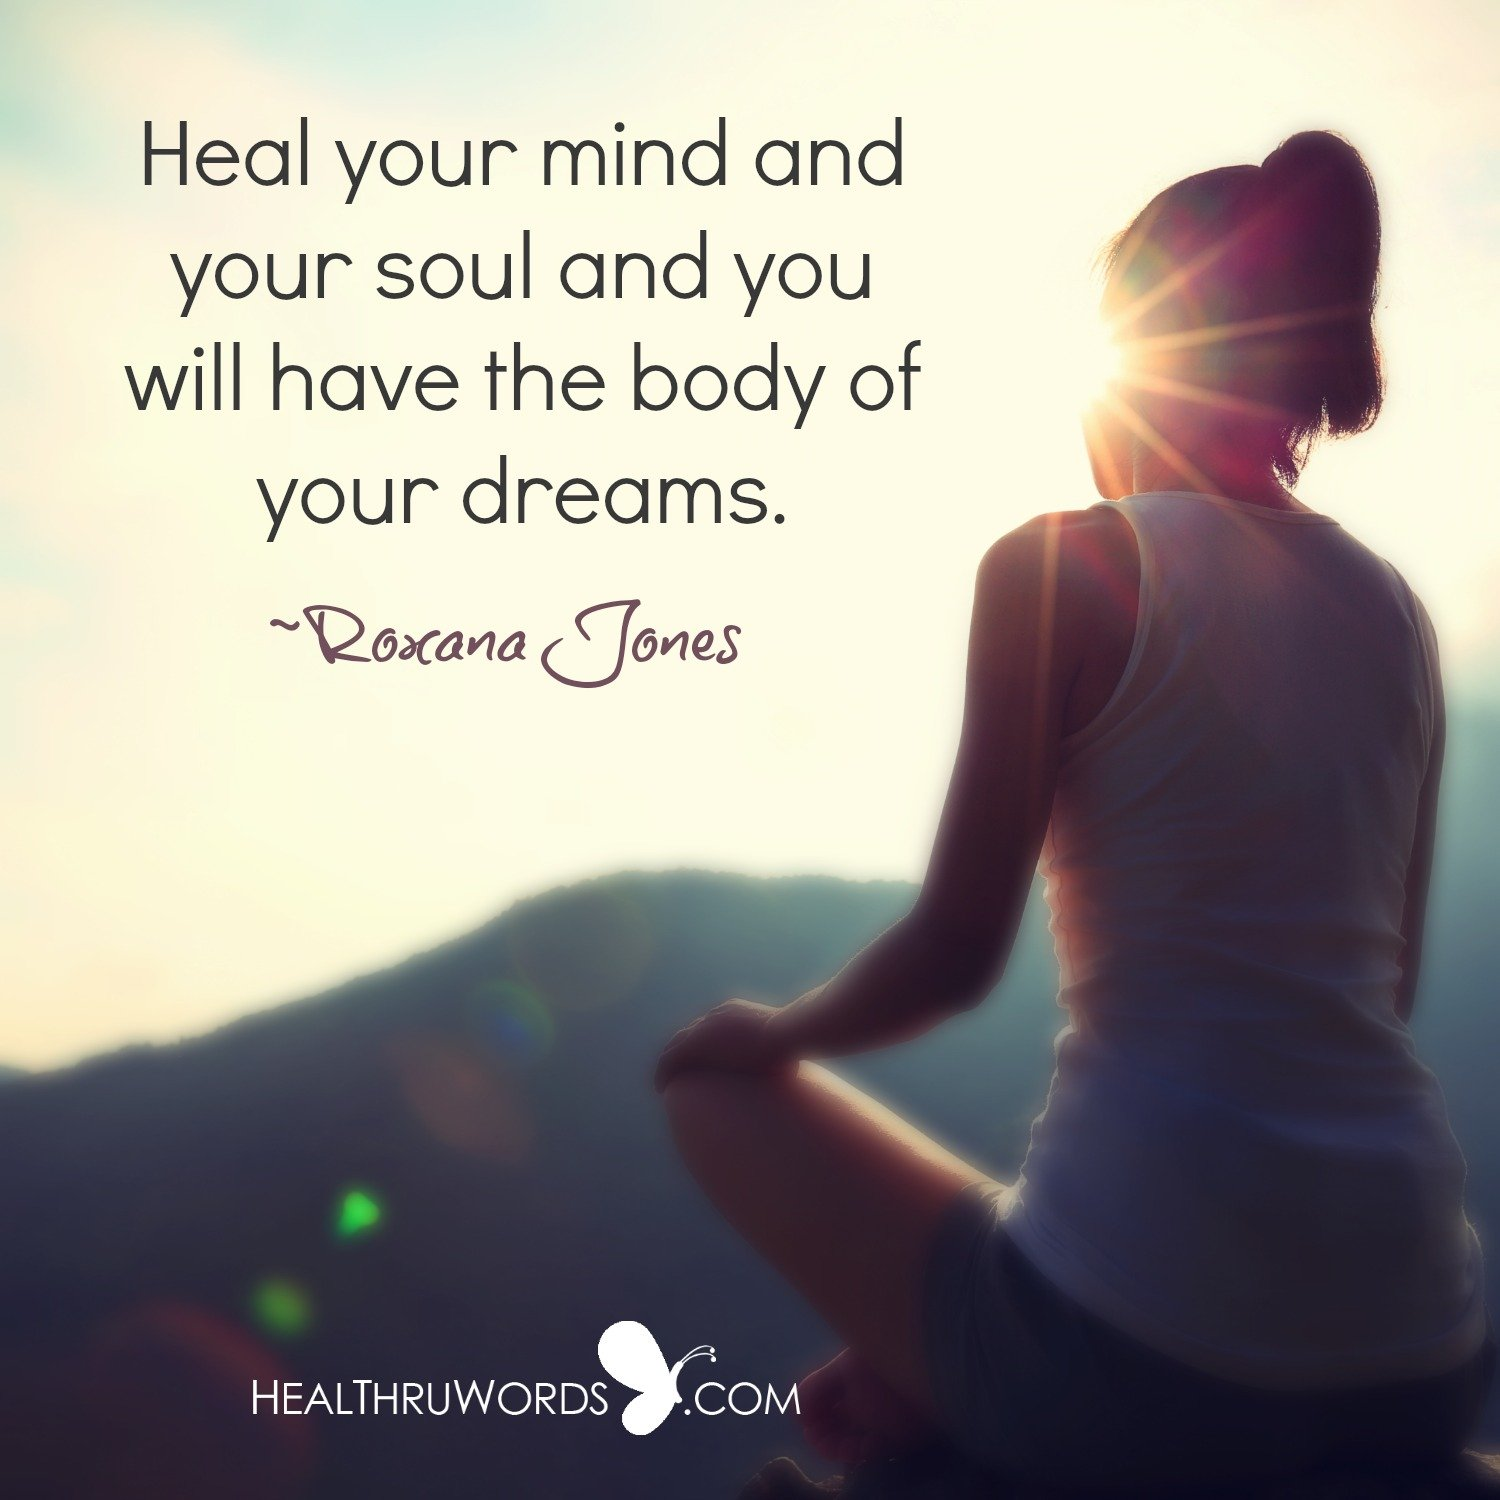 healing starts within inspirational images and quotes